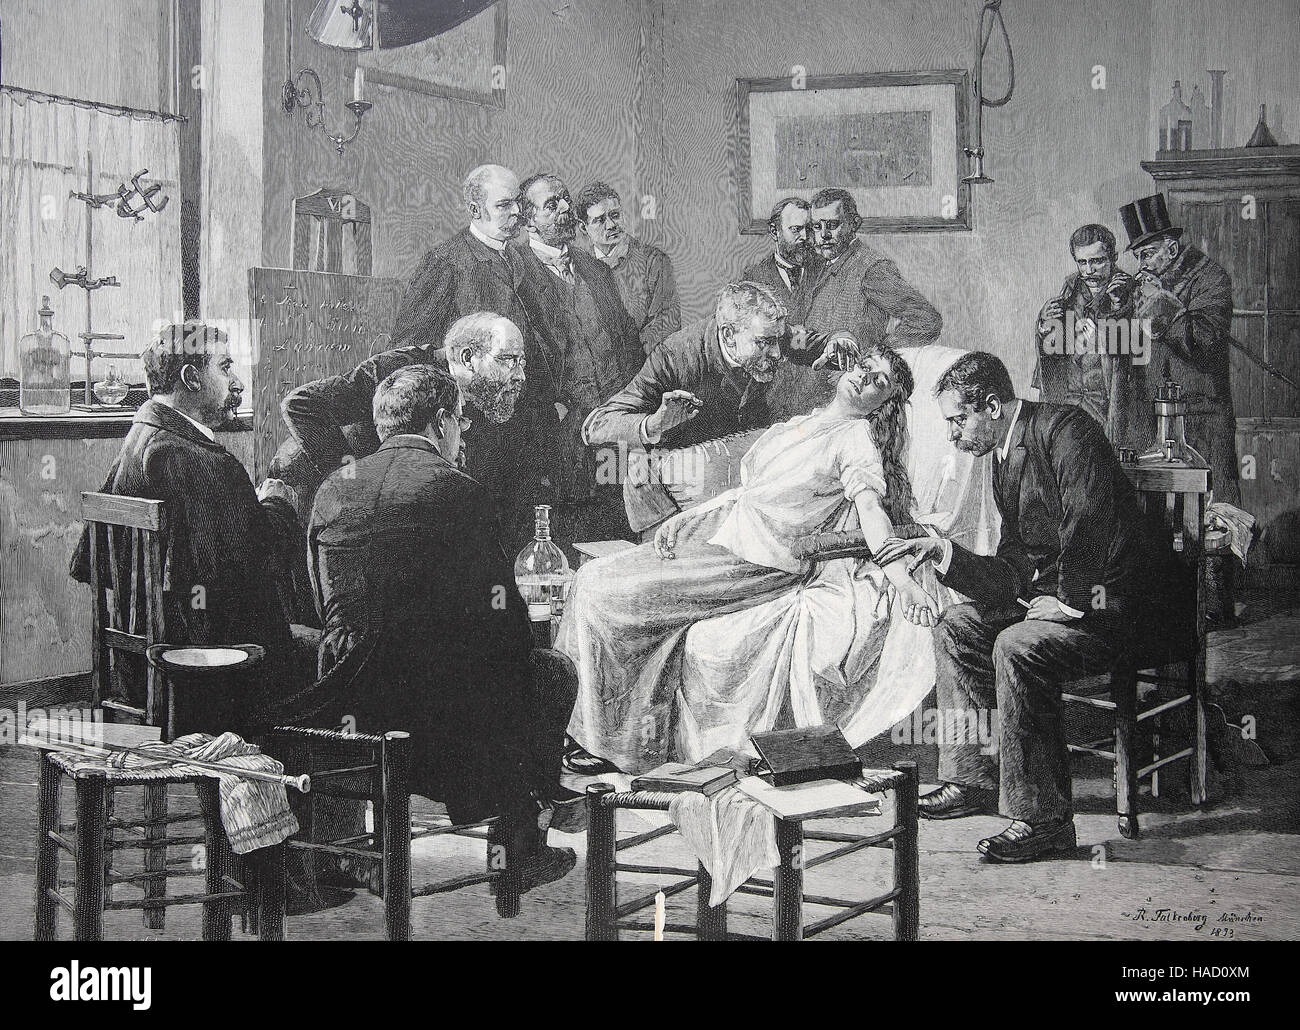 Hypnosis, A group scholar performs hypnosis on a patient, by B. Falkenberg, illustration published in 1880 - Stock Image